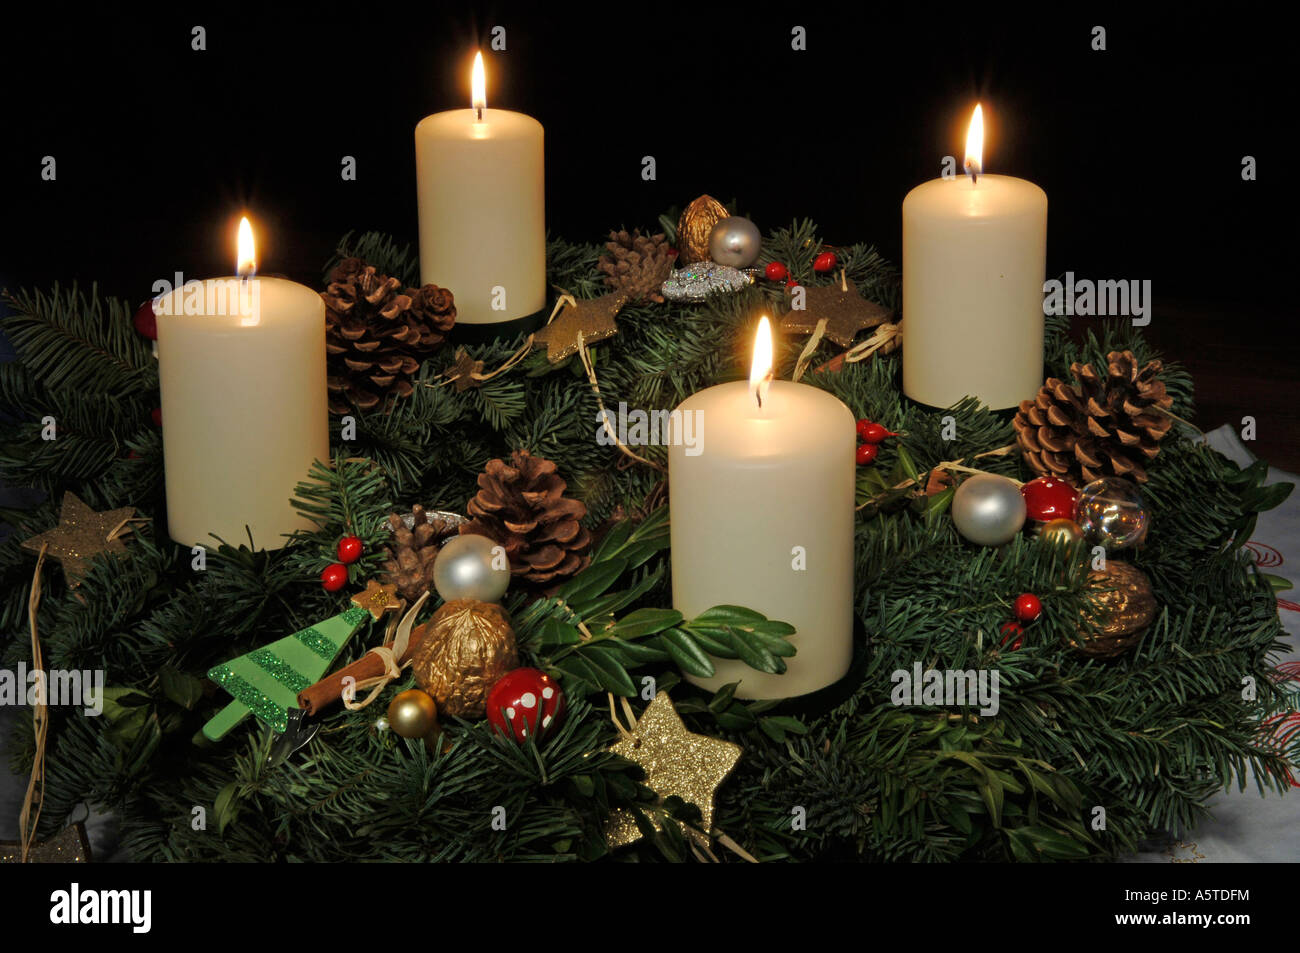 advent adventszeit adventskranz advent vier kerzen advent candle stock photo royalty free image. Black Bedroom Furniture Sets. Home Design Ideas